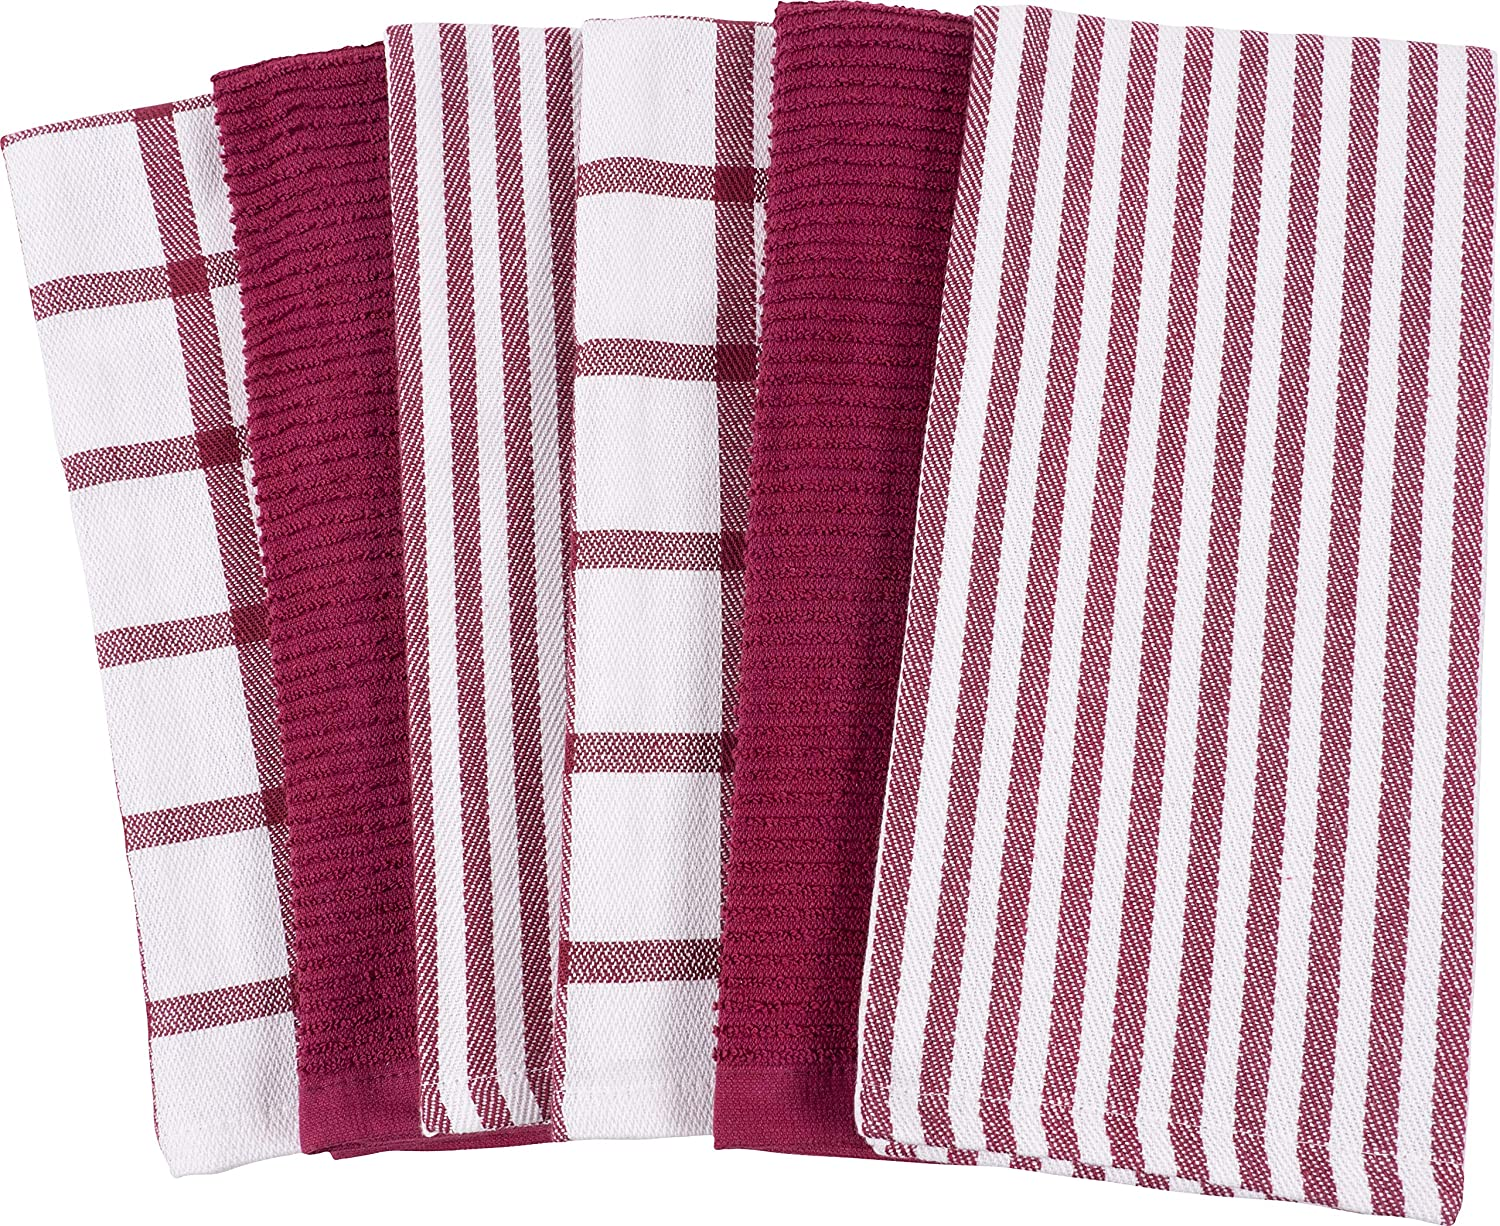 KAF Home Mixed Flat & Terry Kitchen Towels | Set of 6 18 x 28 inches | 4 Flat Weave Towels Cooking Drying Dishes 2 Terry Towels House Cleaning Tackling Messes Spills (Black)